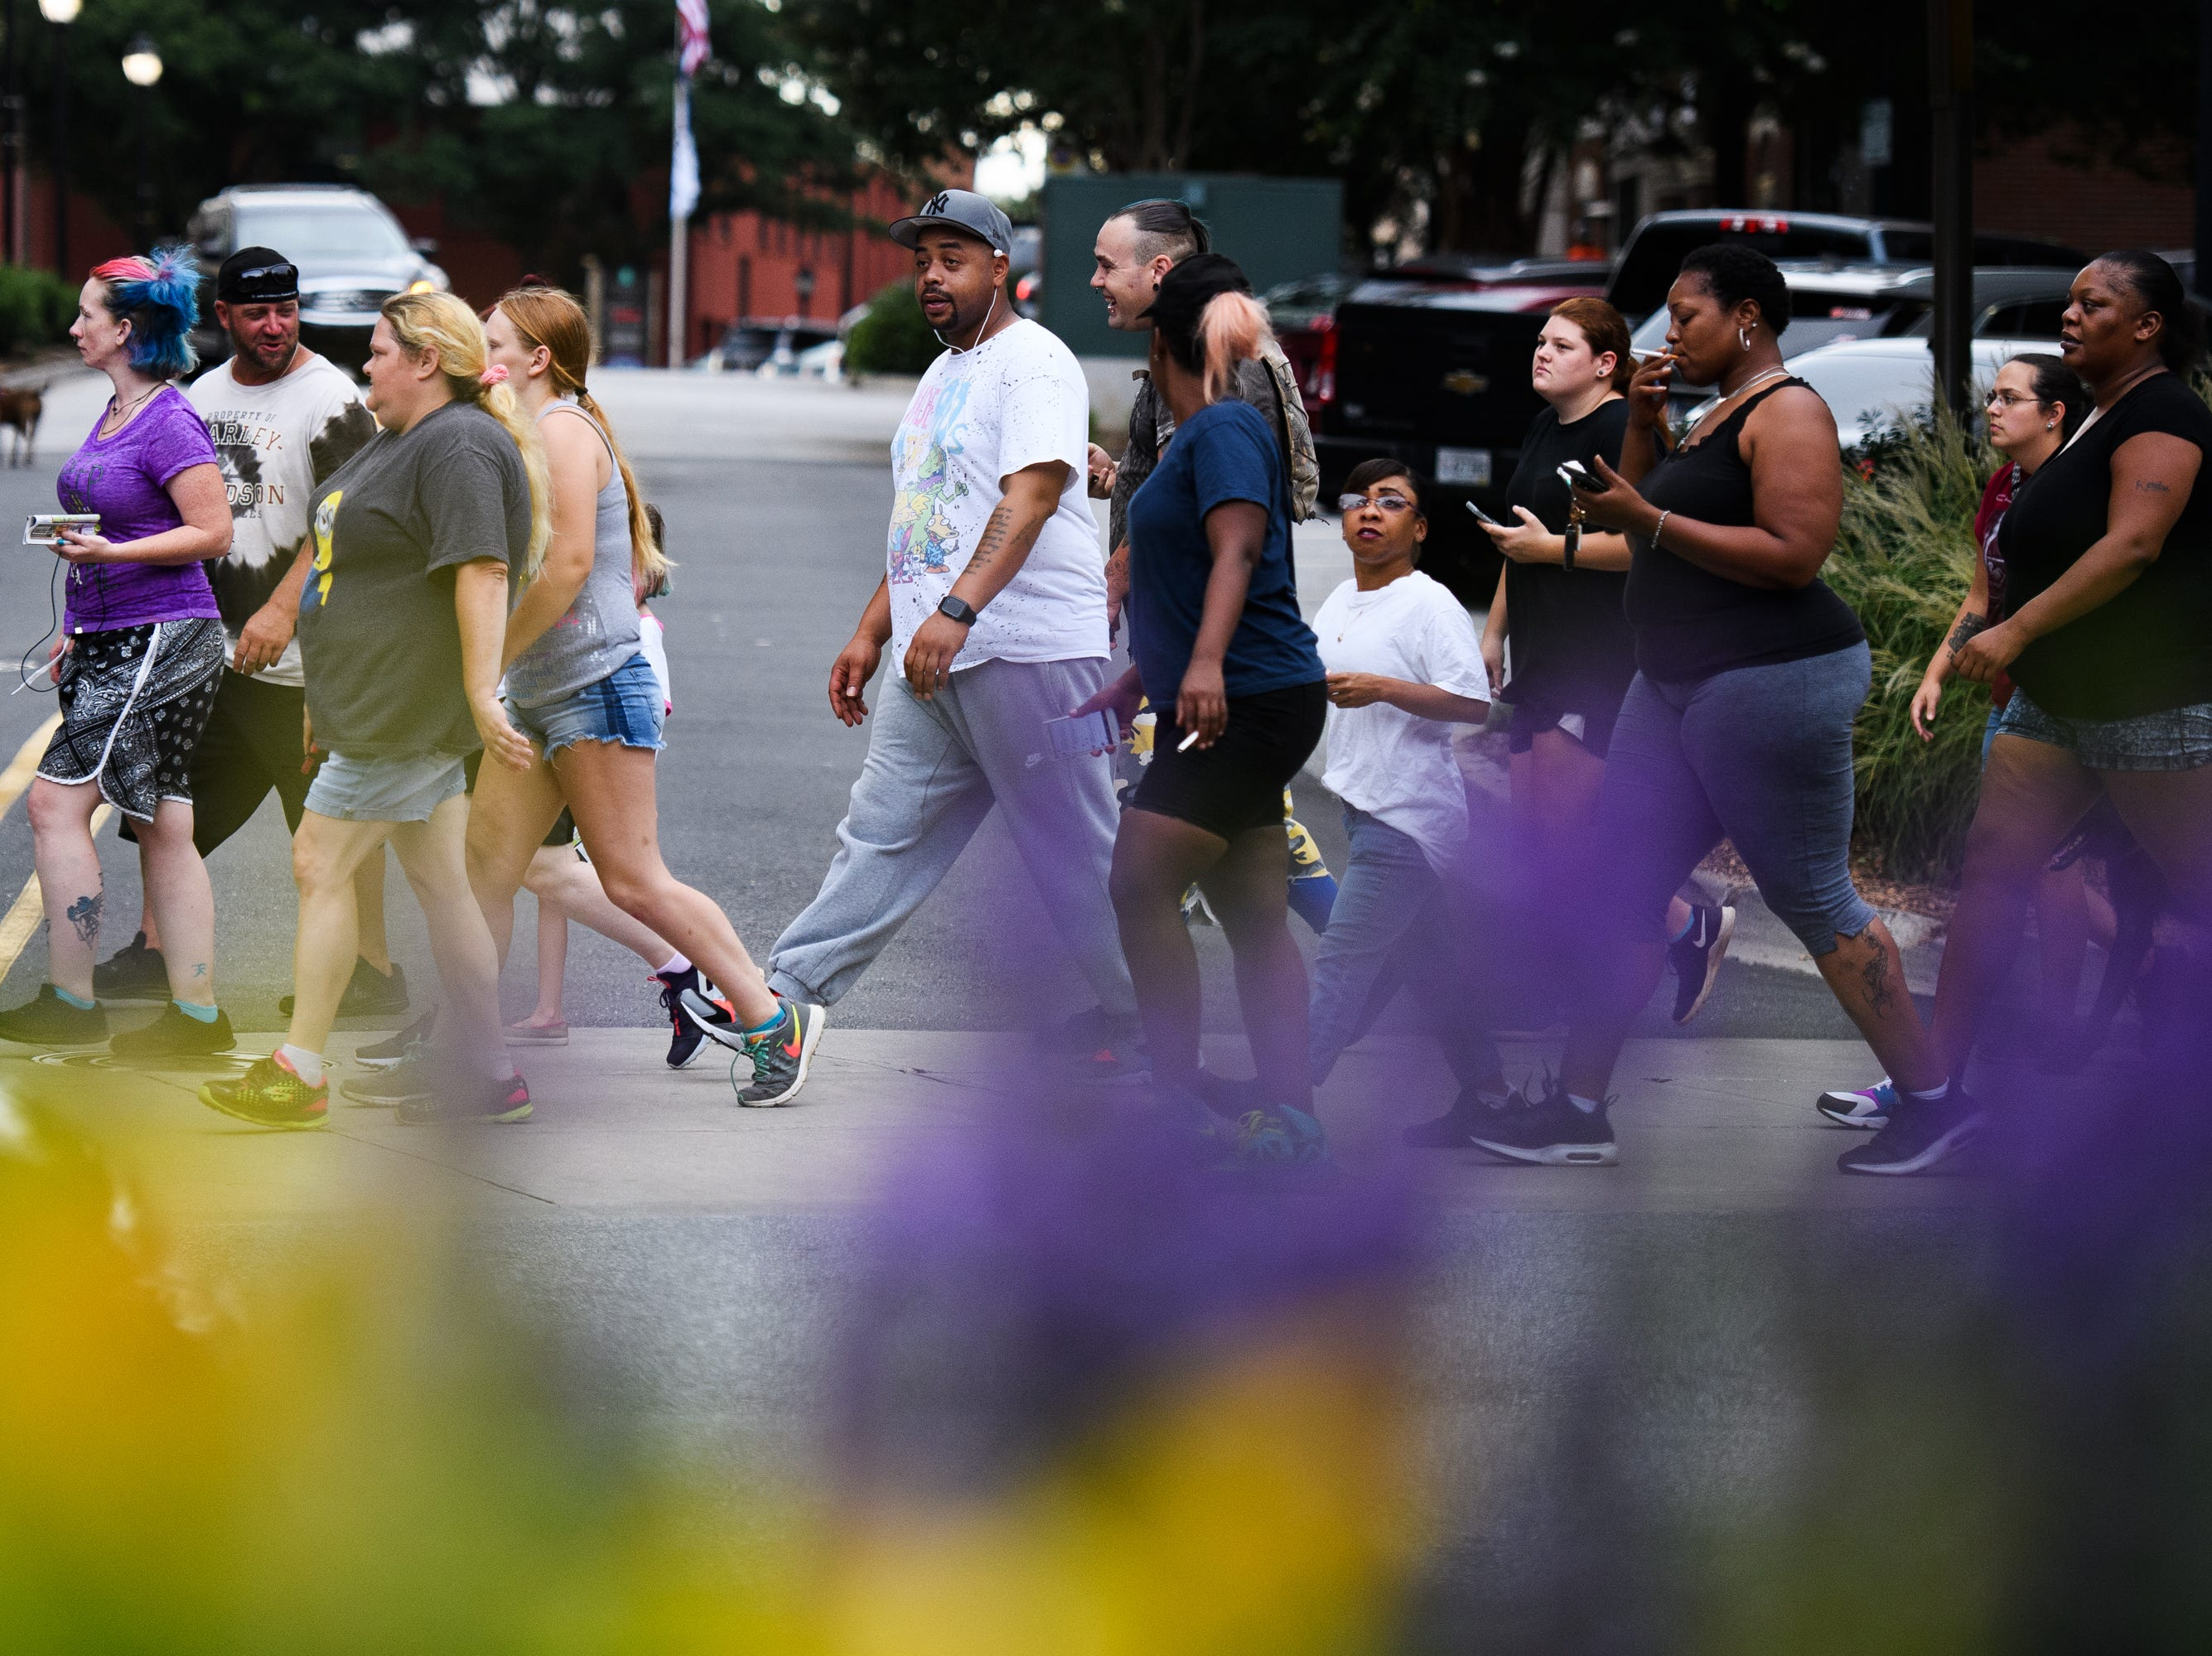 More than 1,000 people participated in the Breakout Greenville Treasure Hunt in downtown Greenville on Tuesday, Aug. 7, 2018. Breakout hid $2,000 in cash throughout the city for people to find.